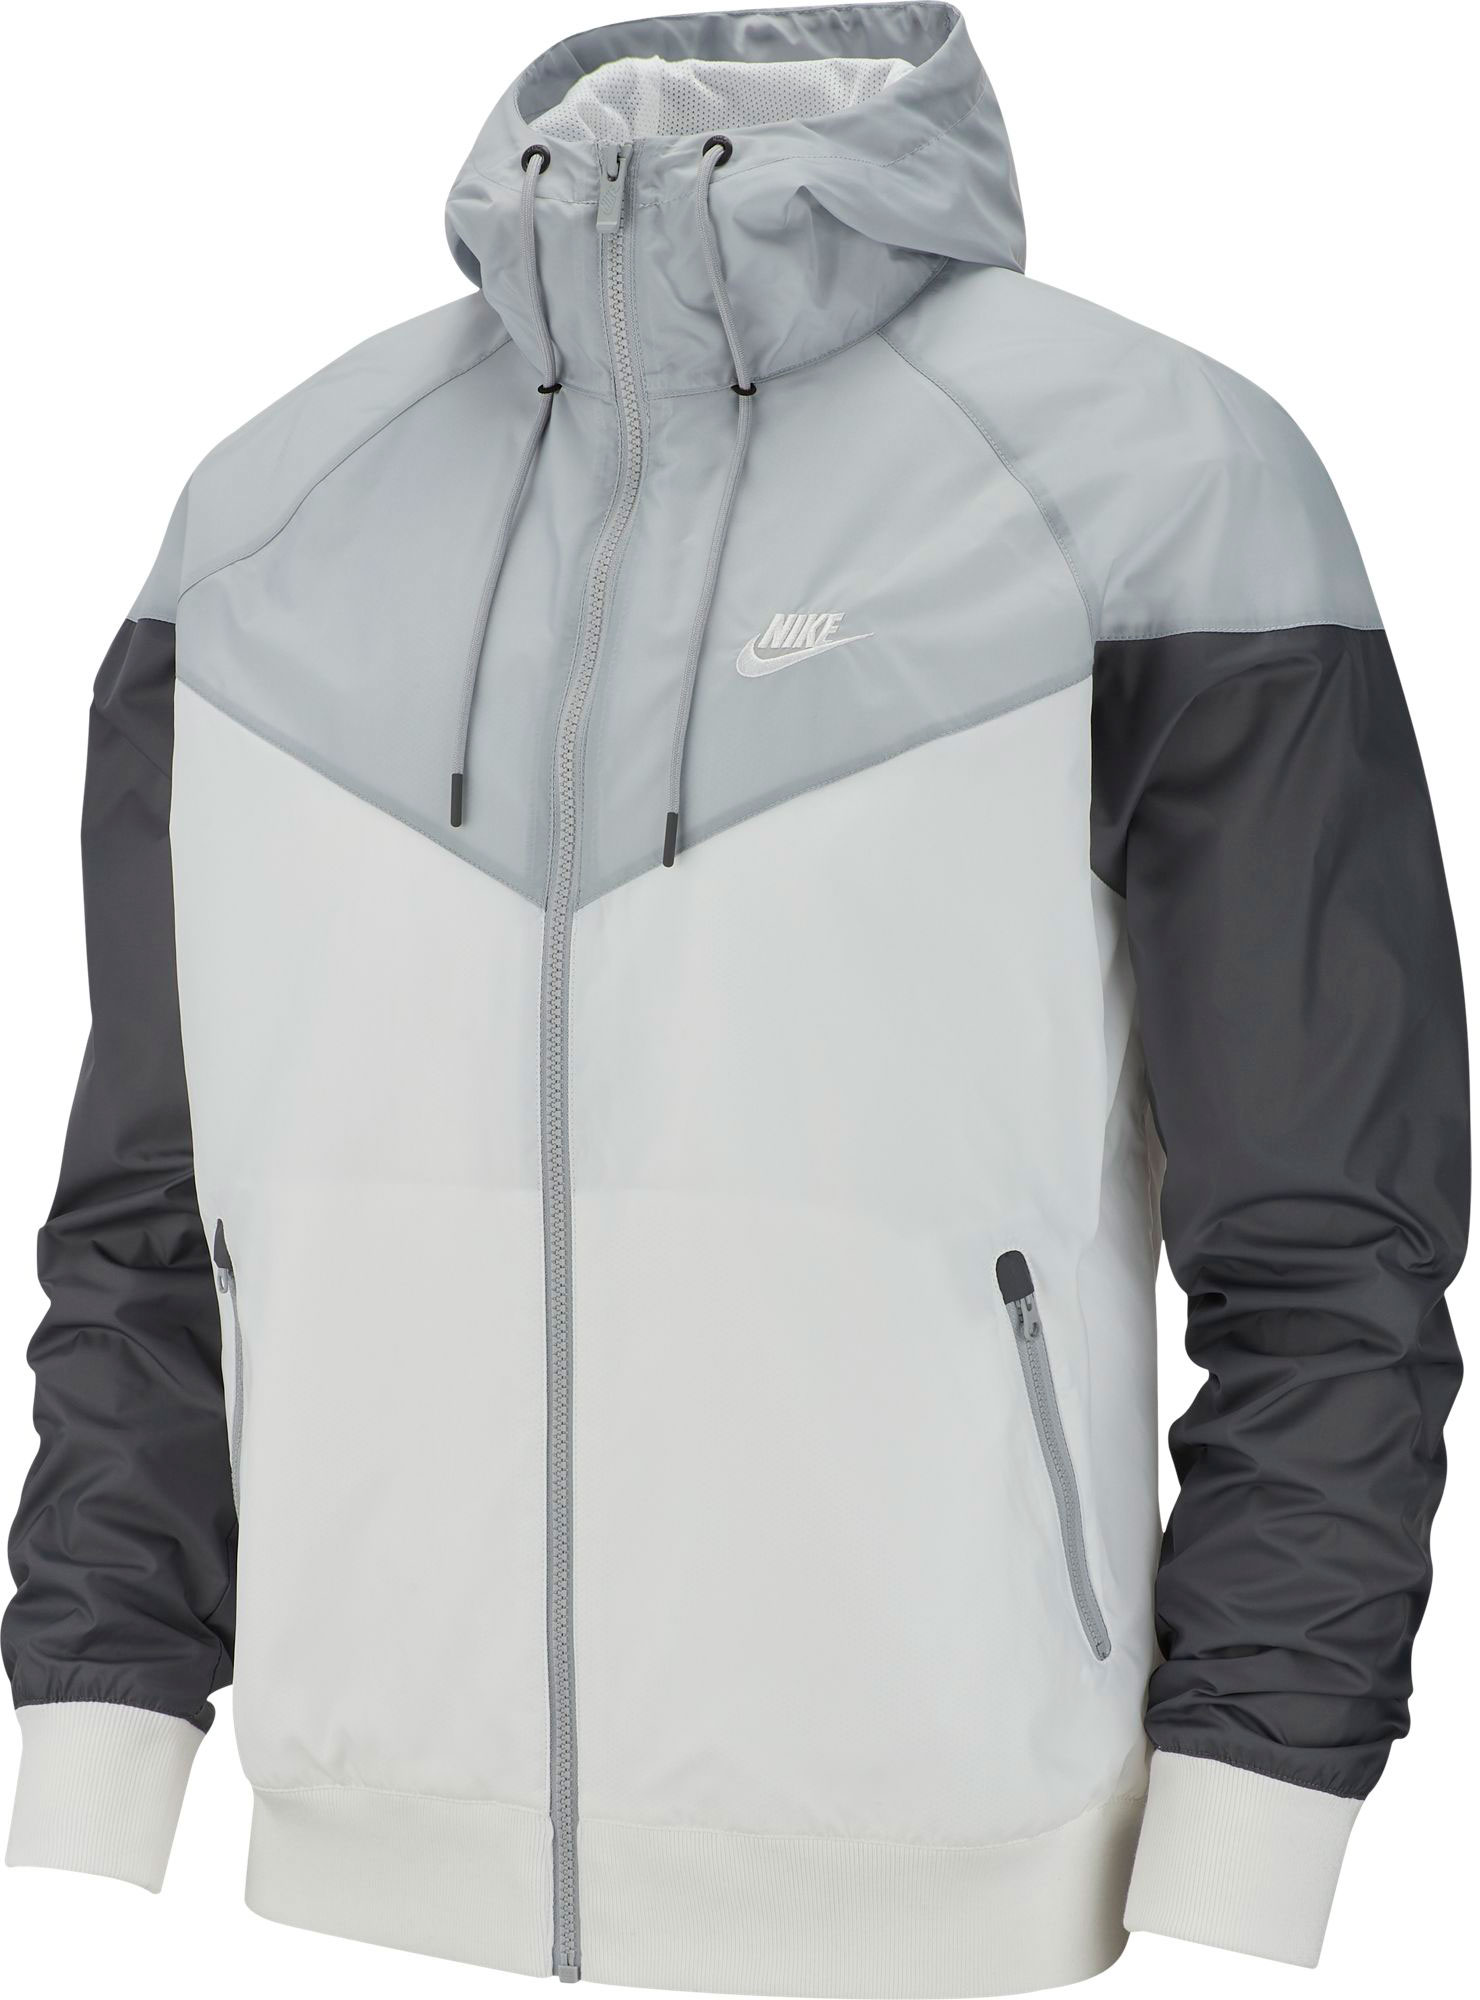 Nike Nsw He Wr Jkt Hd M Sportisimo Com In the category men down jackets at yoox you can find pieces from the best brands. sportisimo com